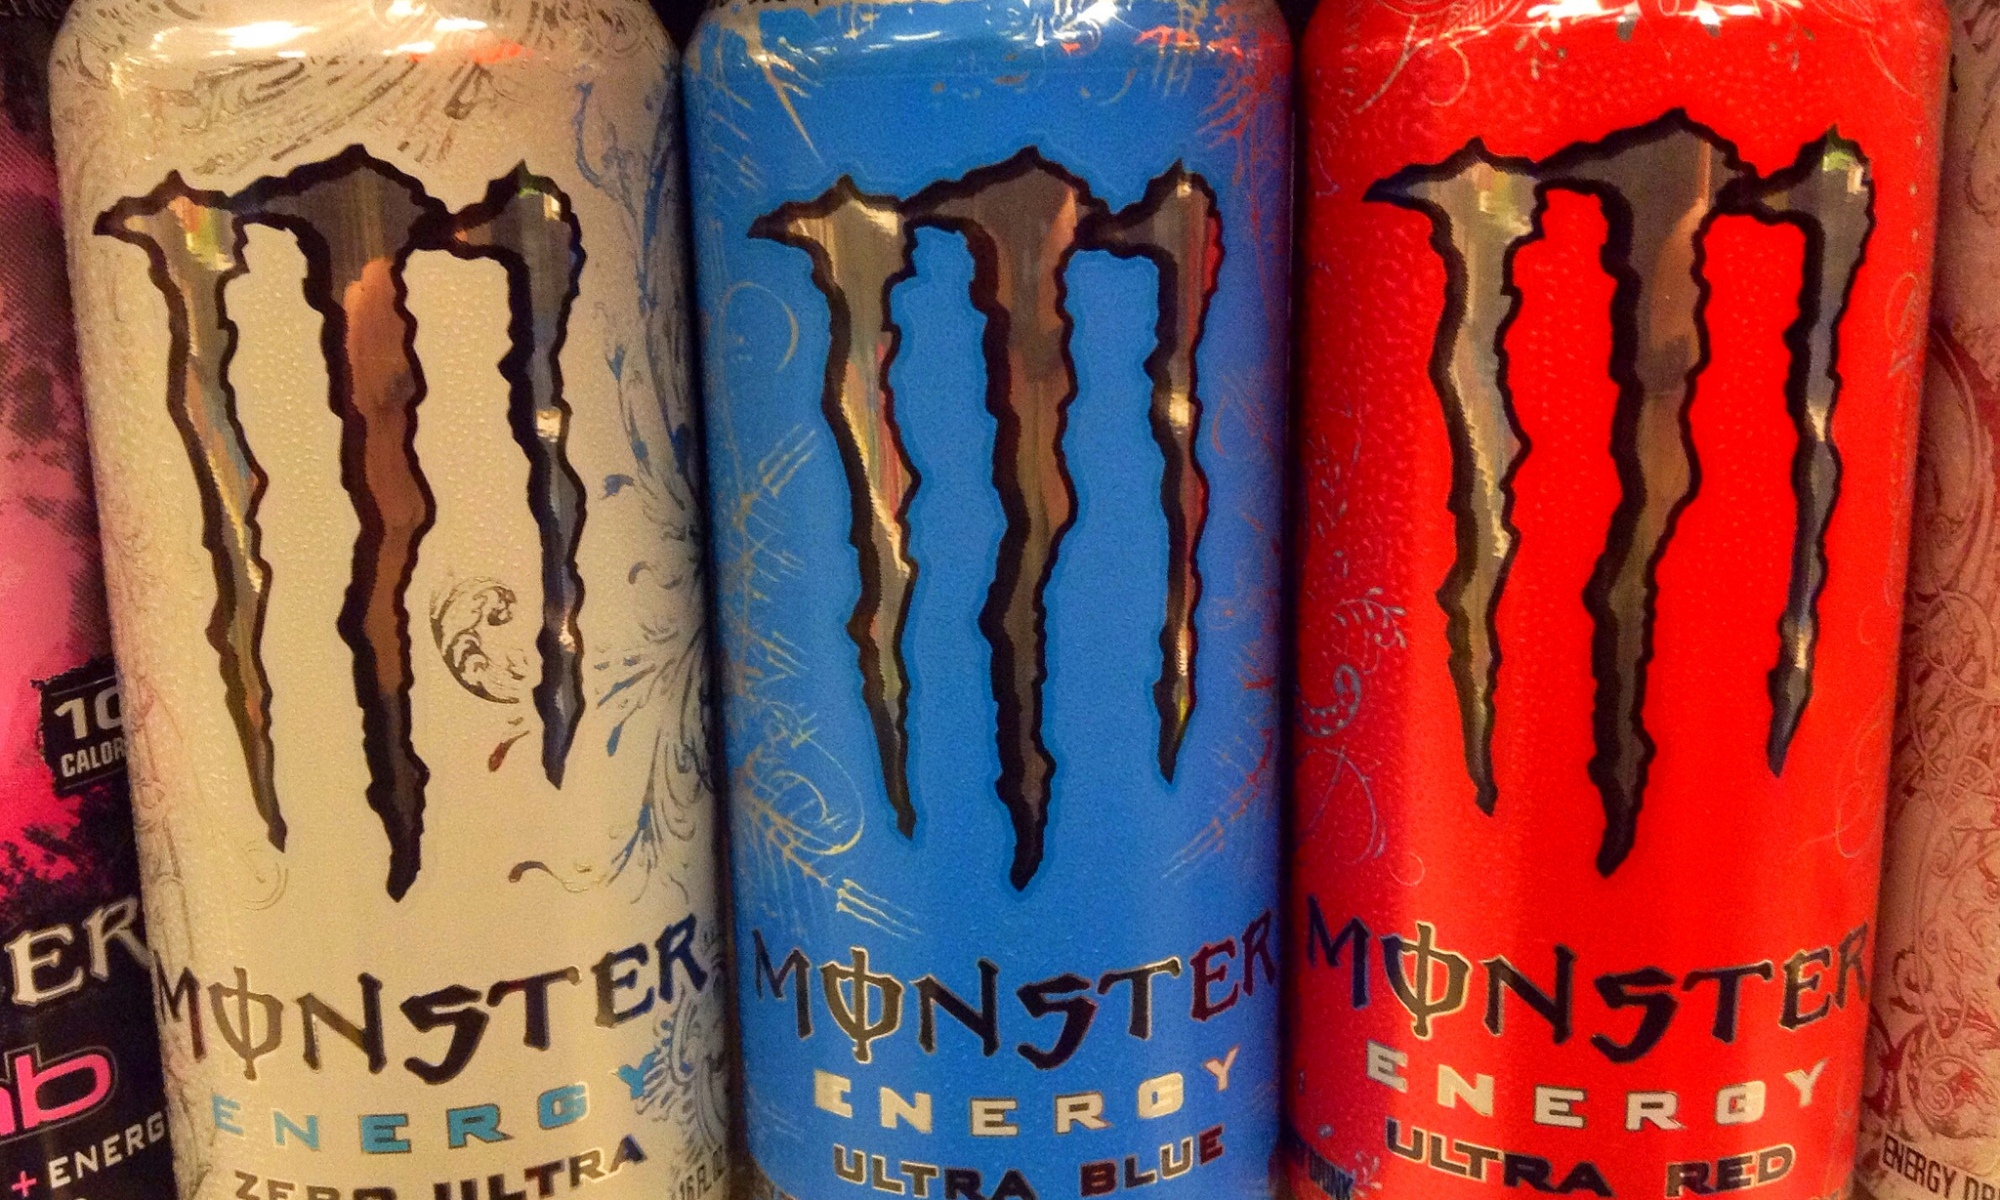 MONSTER ENERGY DRINKS REVIEW